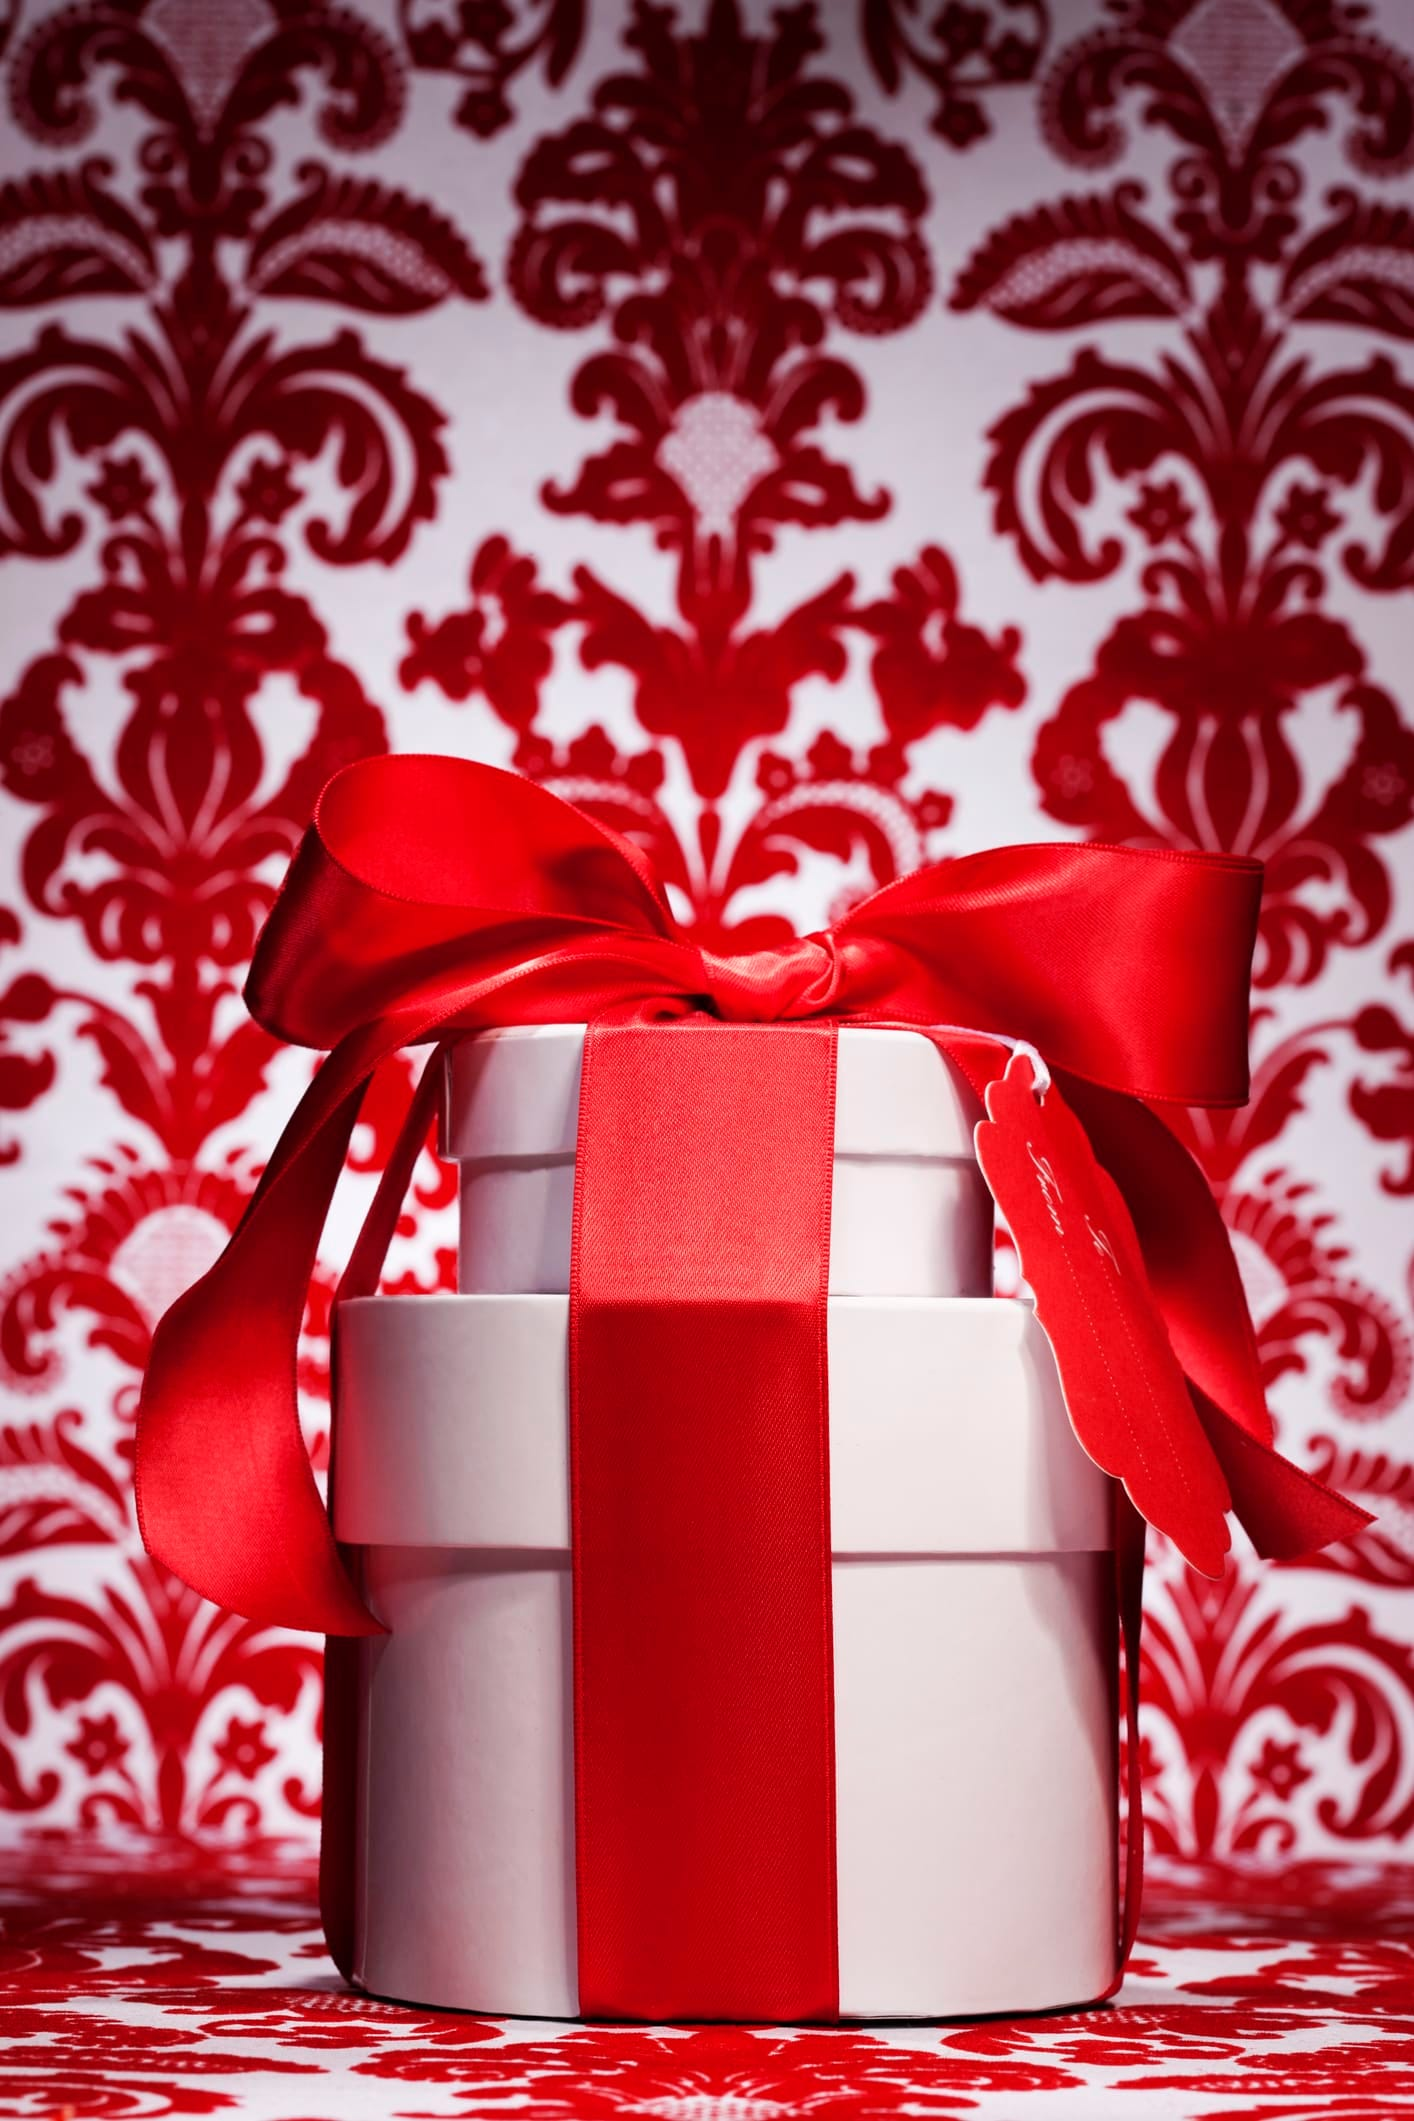 white present wrapped with red bow and ornate red and white background